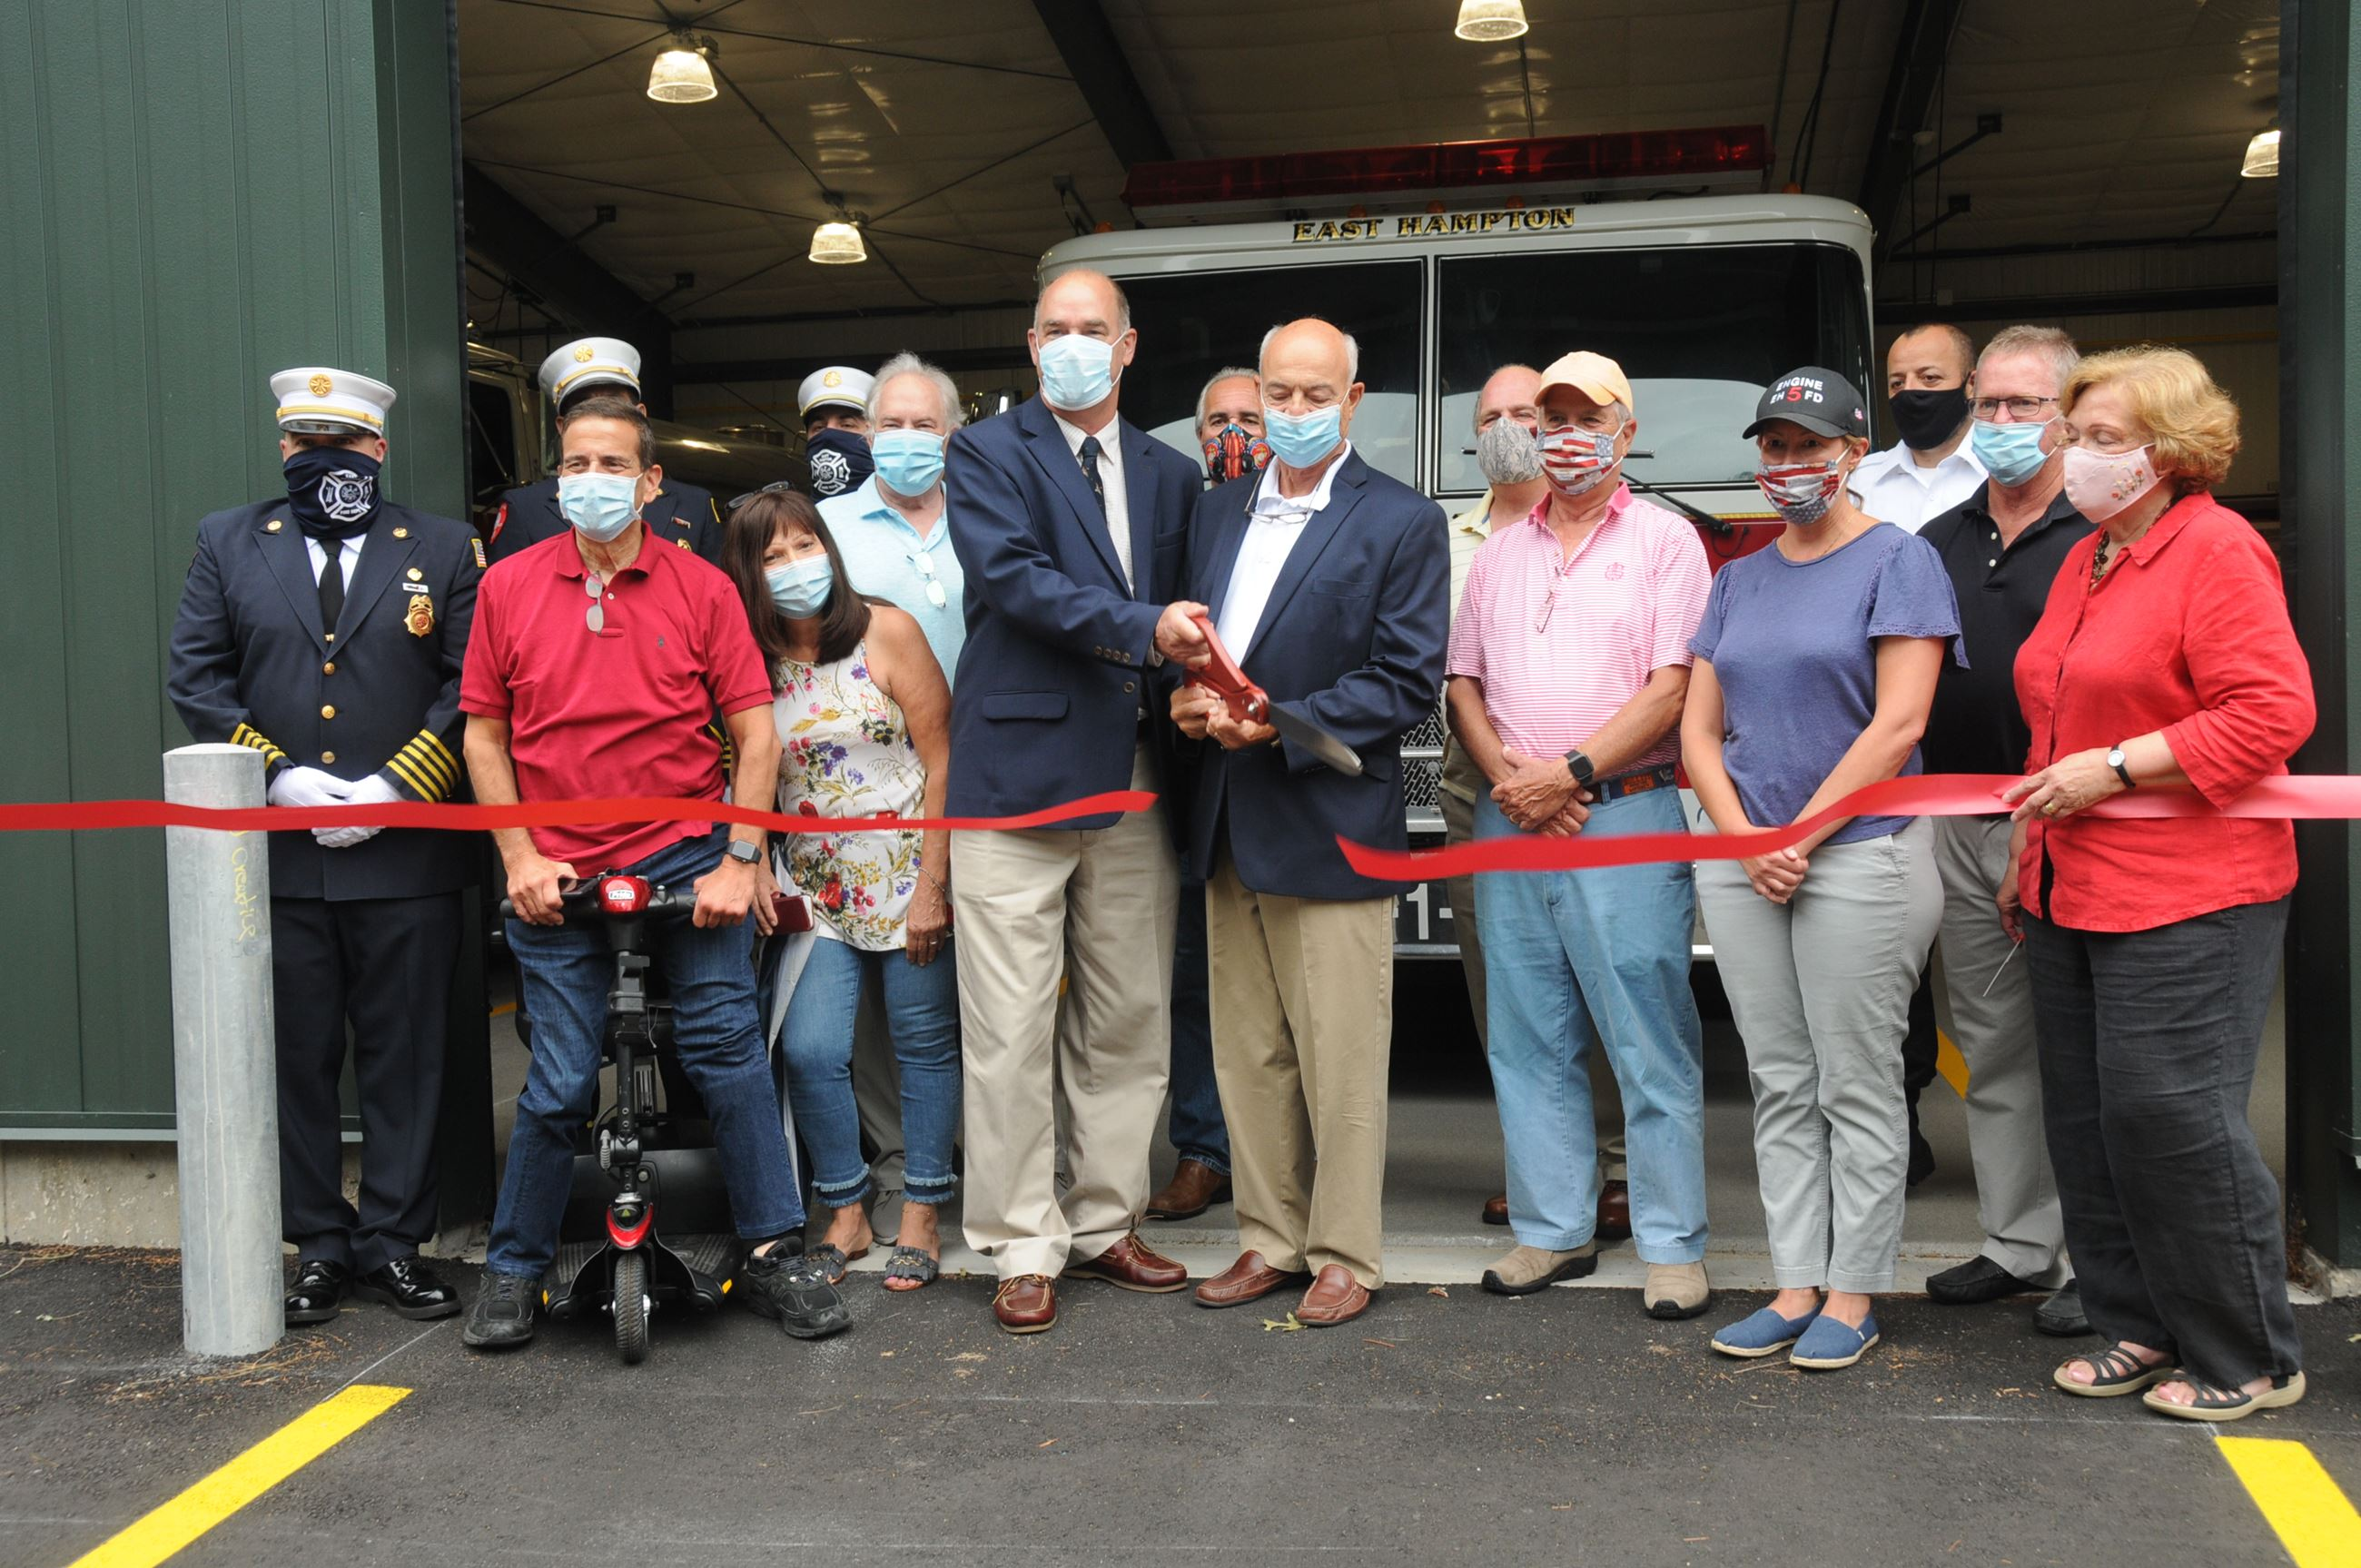 Ribbon Cutting at the New EH Firehouse 8.7.20 c. Richard Lewin